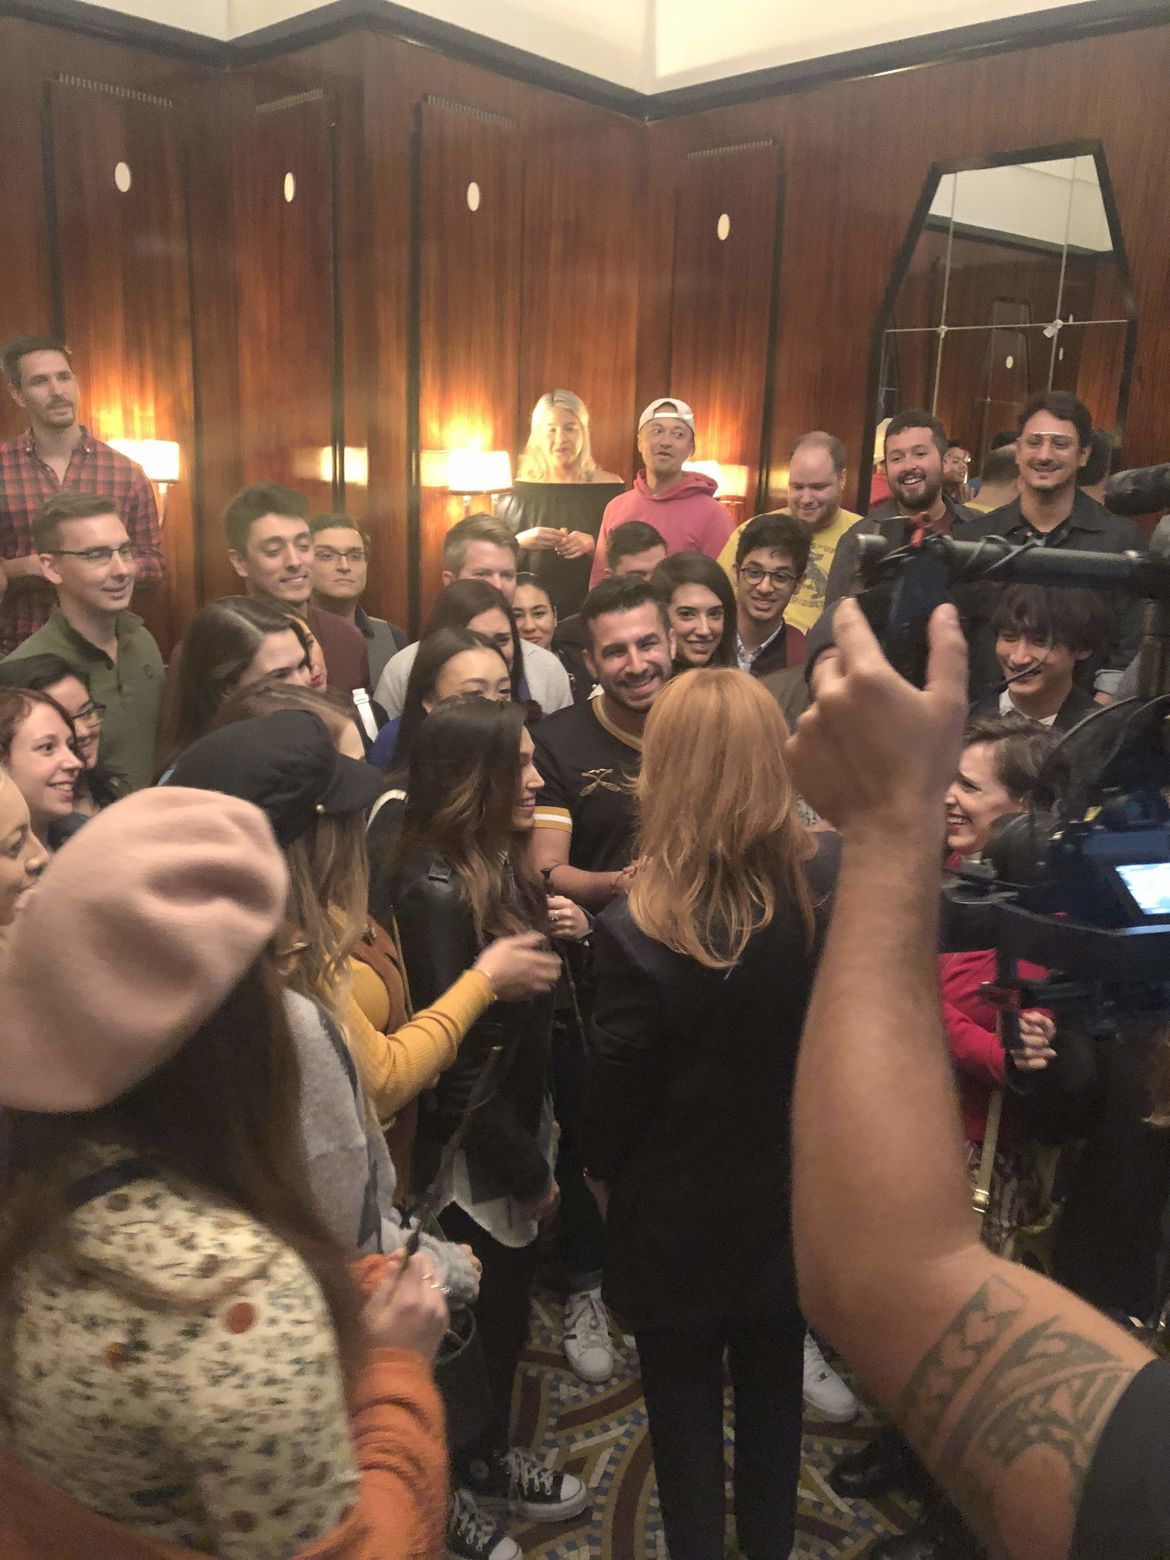 J.K. Rowling meeting fans Fantastic Beasts: The Crimes of Grindelwald